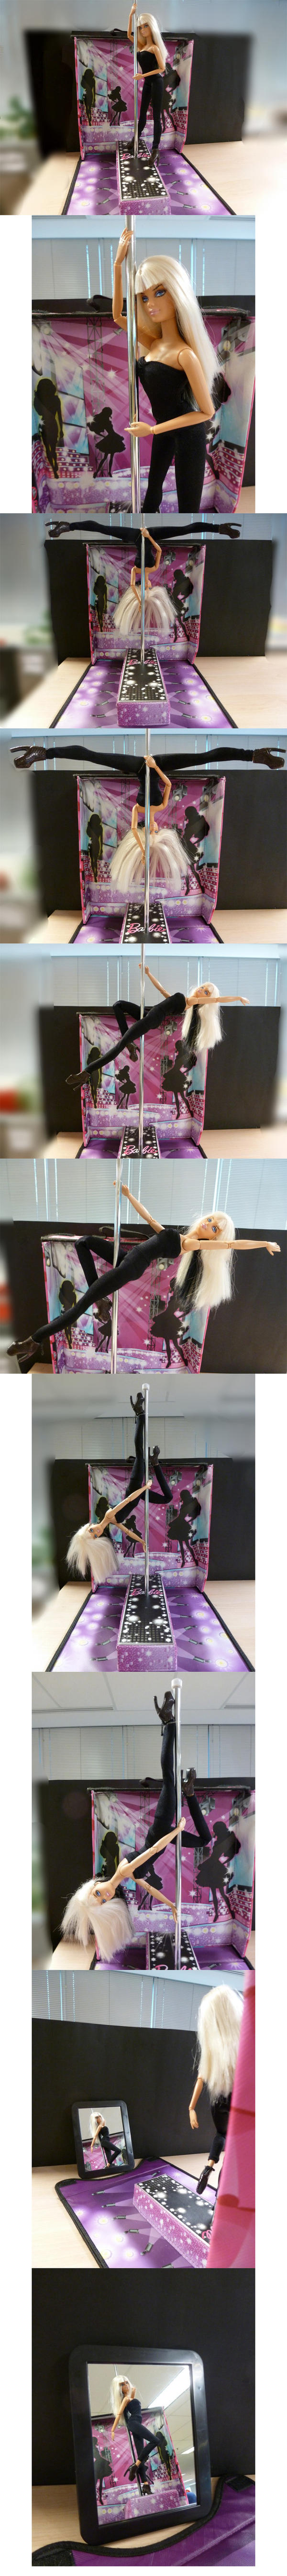 lower price with outlet buying new Barbie Pole Dancer by dollyfun on DeviantArt